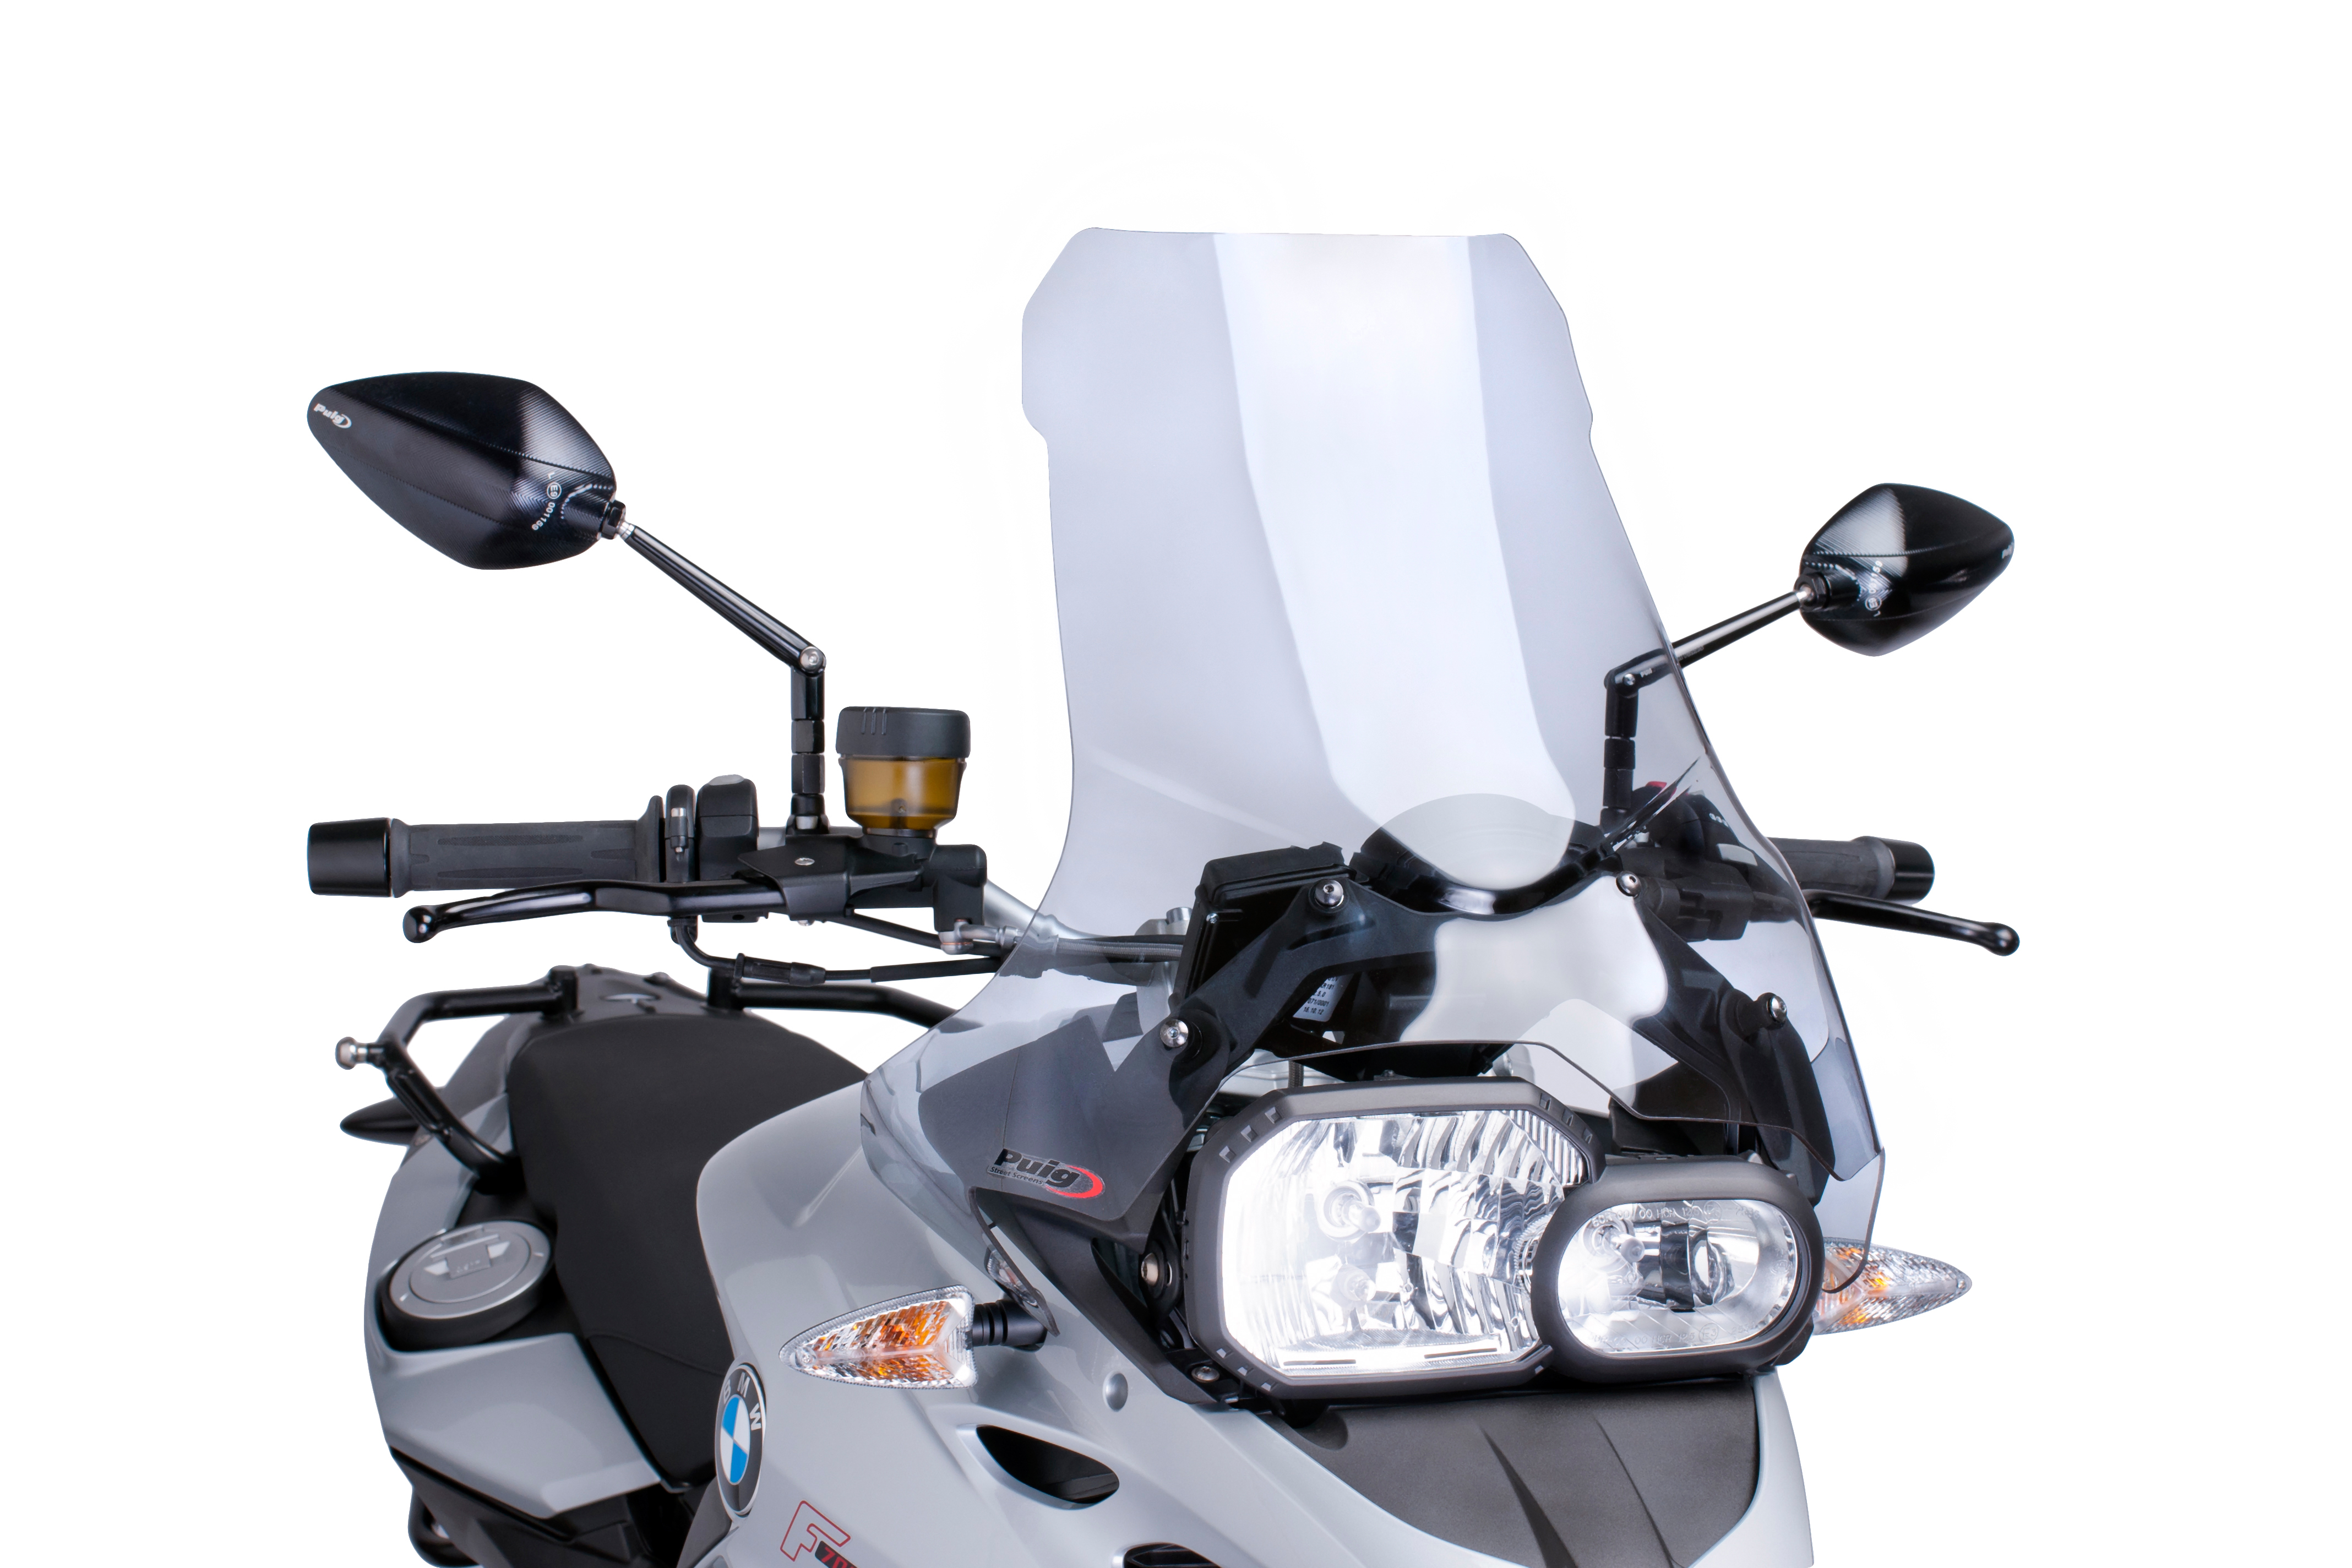 windshield for bmw f700gs more wind protection and comfort. Black Bedroom Furniture Sets. Home Design Ideas